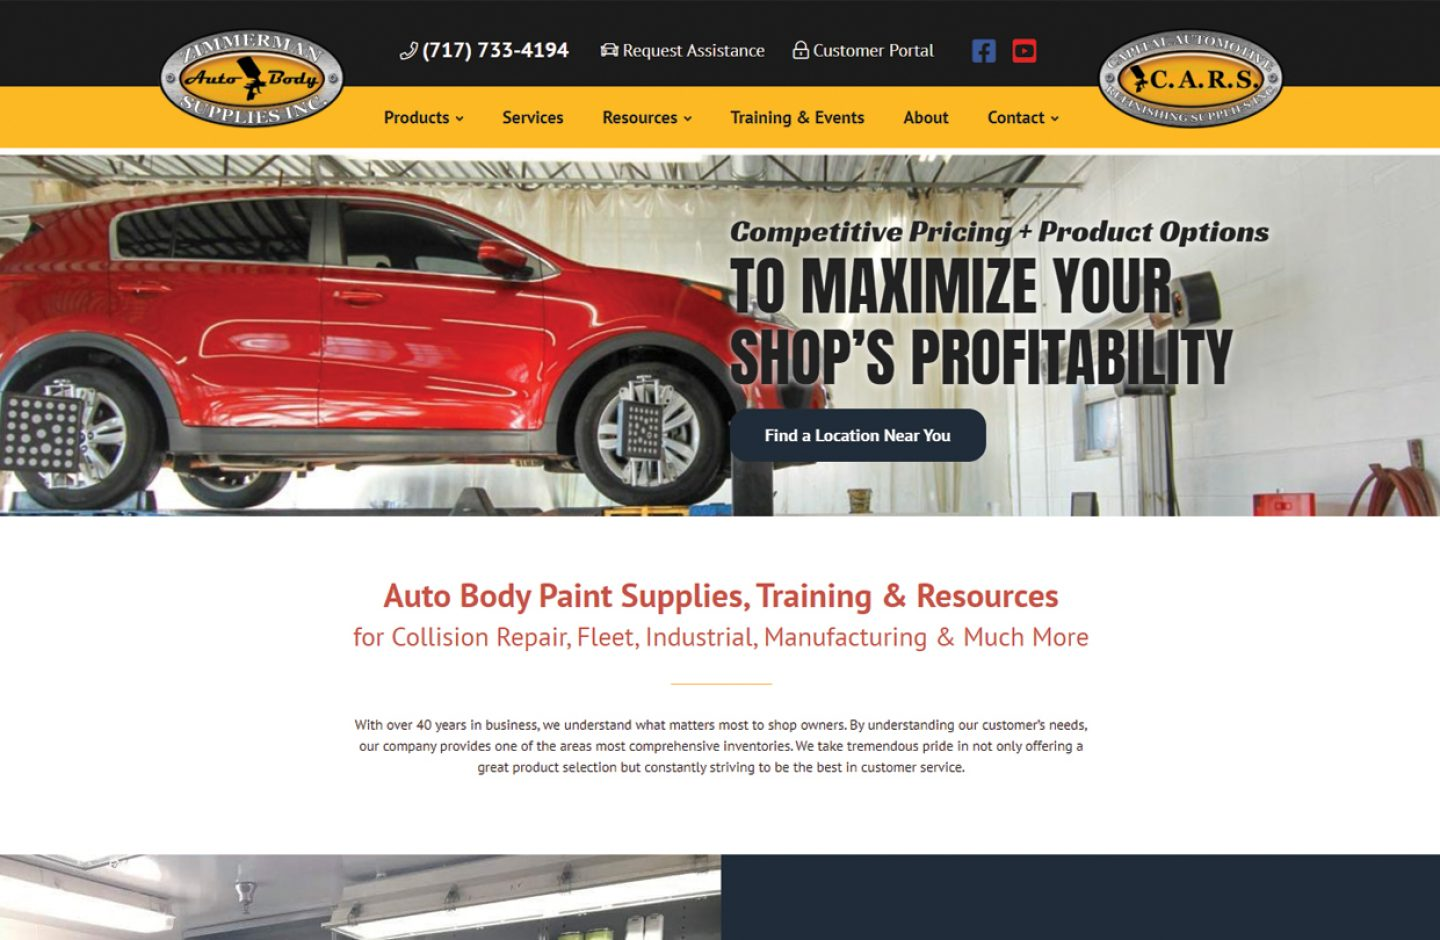 Zimmerman Auto Body Supplies, Inc.